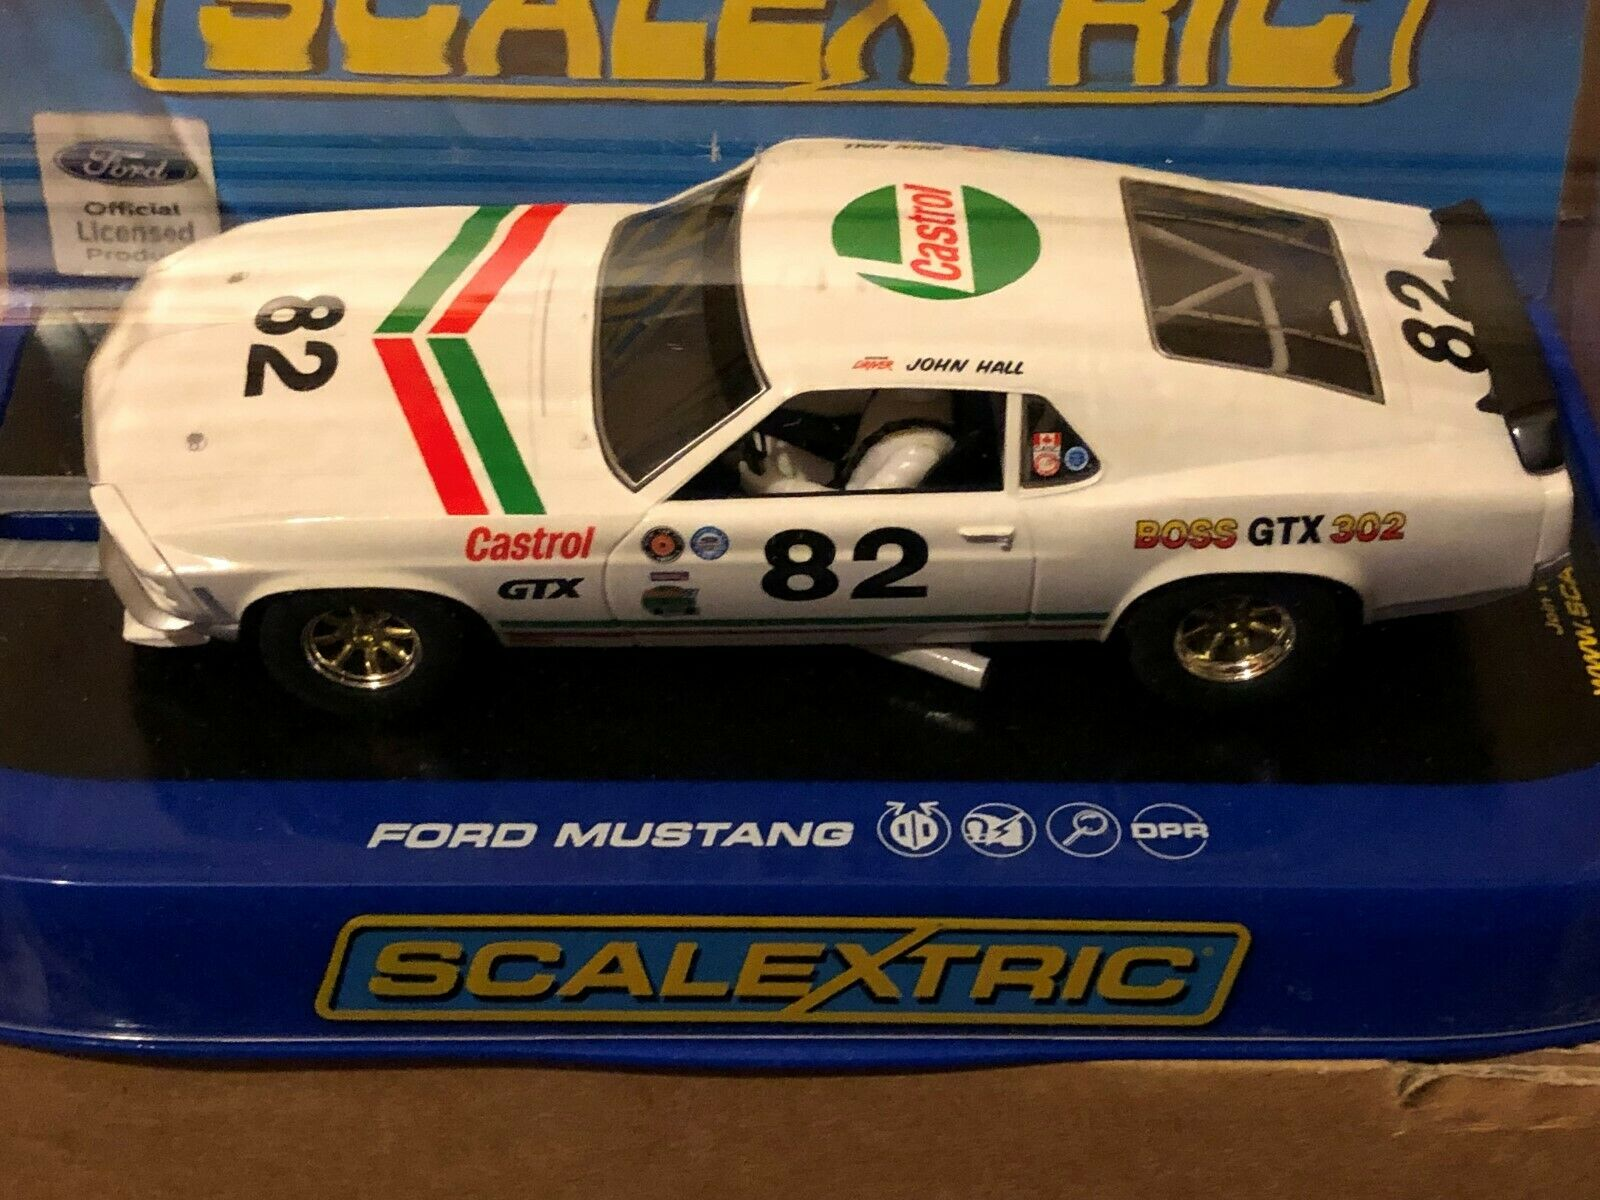 Scalextric C3538 Ford Mustang 1969 Boss 302 GTX DPR